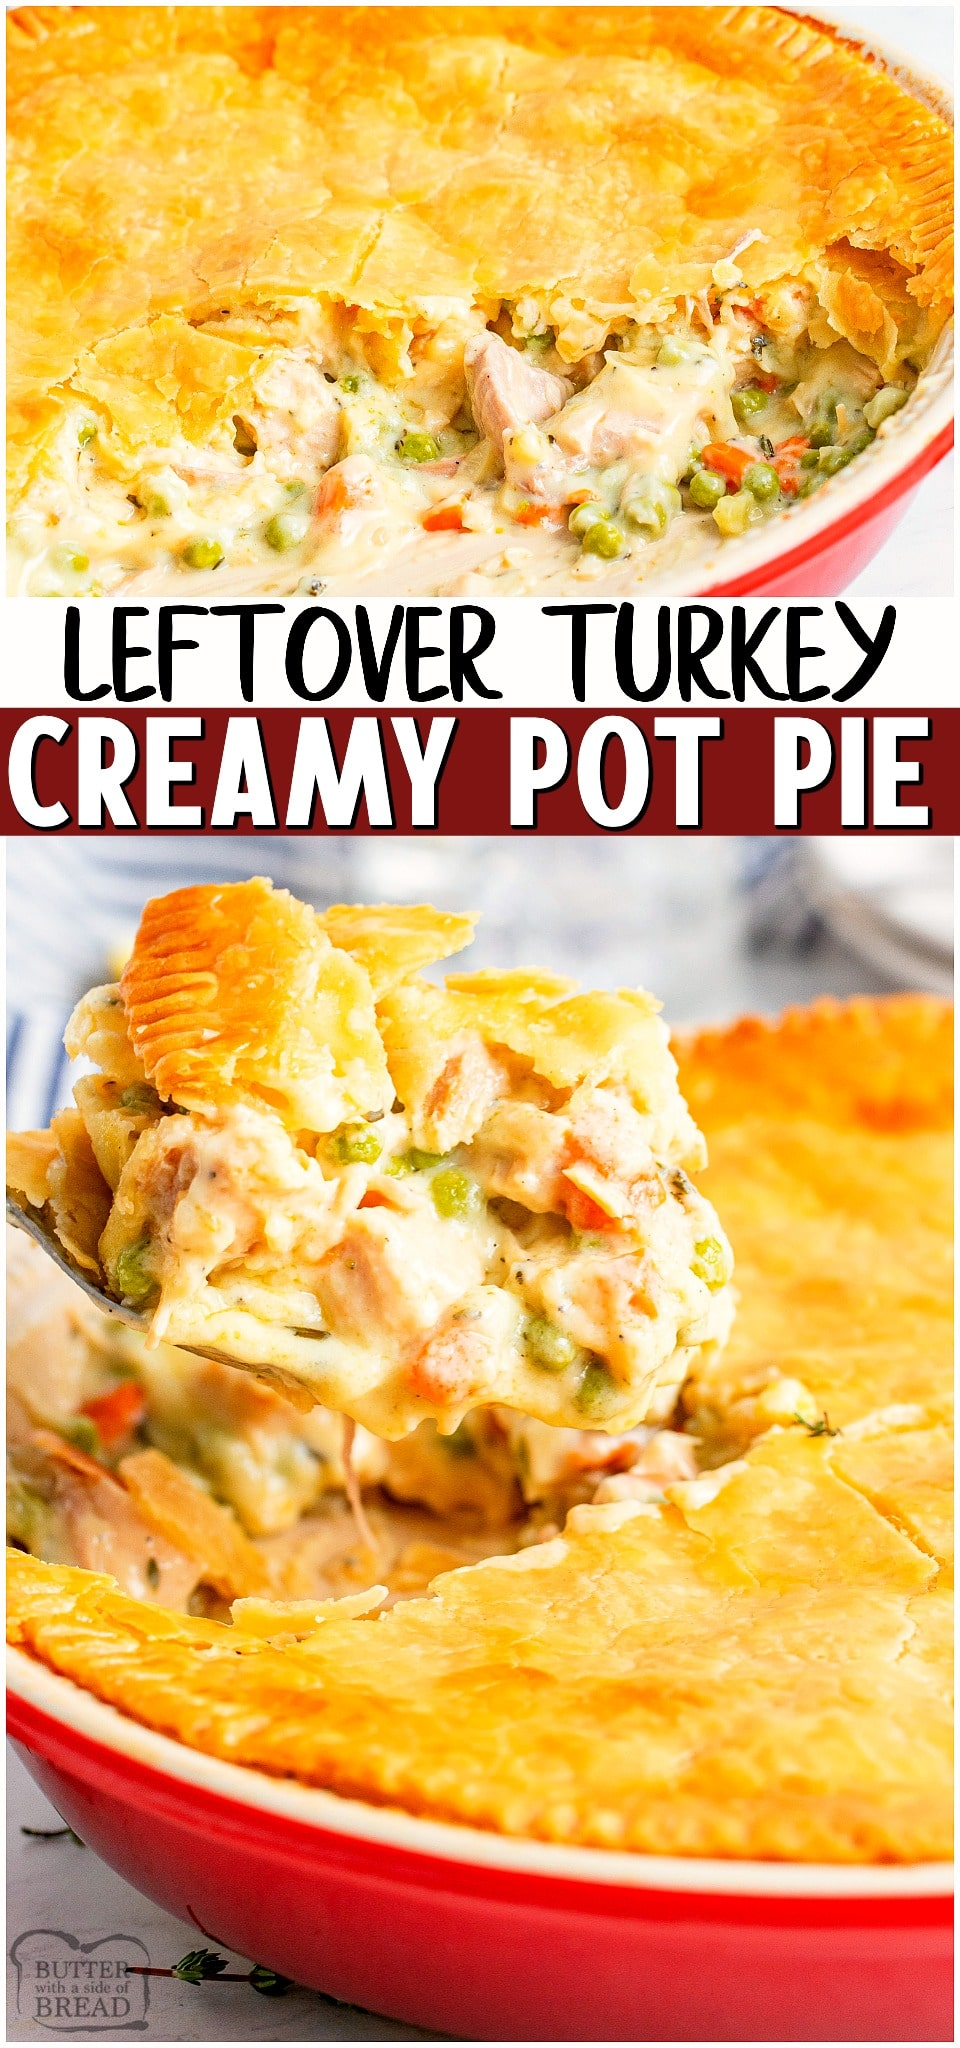 Turkey pot pie made with tender bits of turkey & vegetables in a creamy gravy topped with a crisp golden pie crust. Easy comfort food recipe to make that's perfect for using up leftover turkey! #turkey #leftover #potpie #comfortfood #easydinner #easyrecipe from BUTTER WITH A SIDE OF BREAD